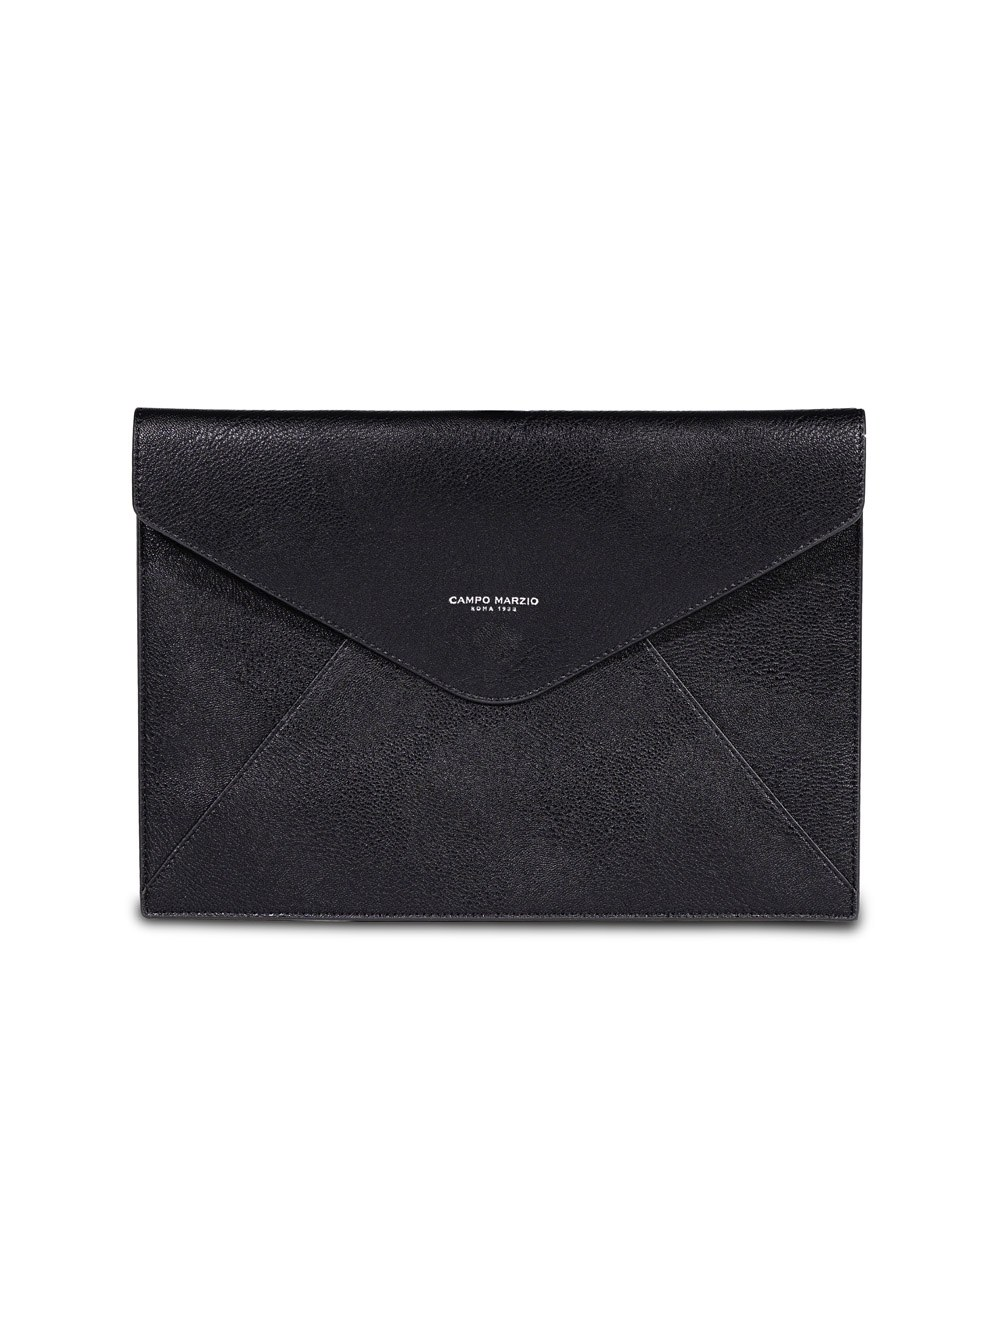 Document Holder A4 Fedor - Black*